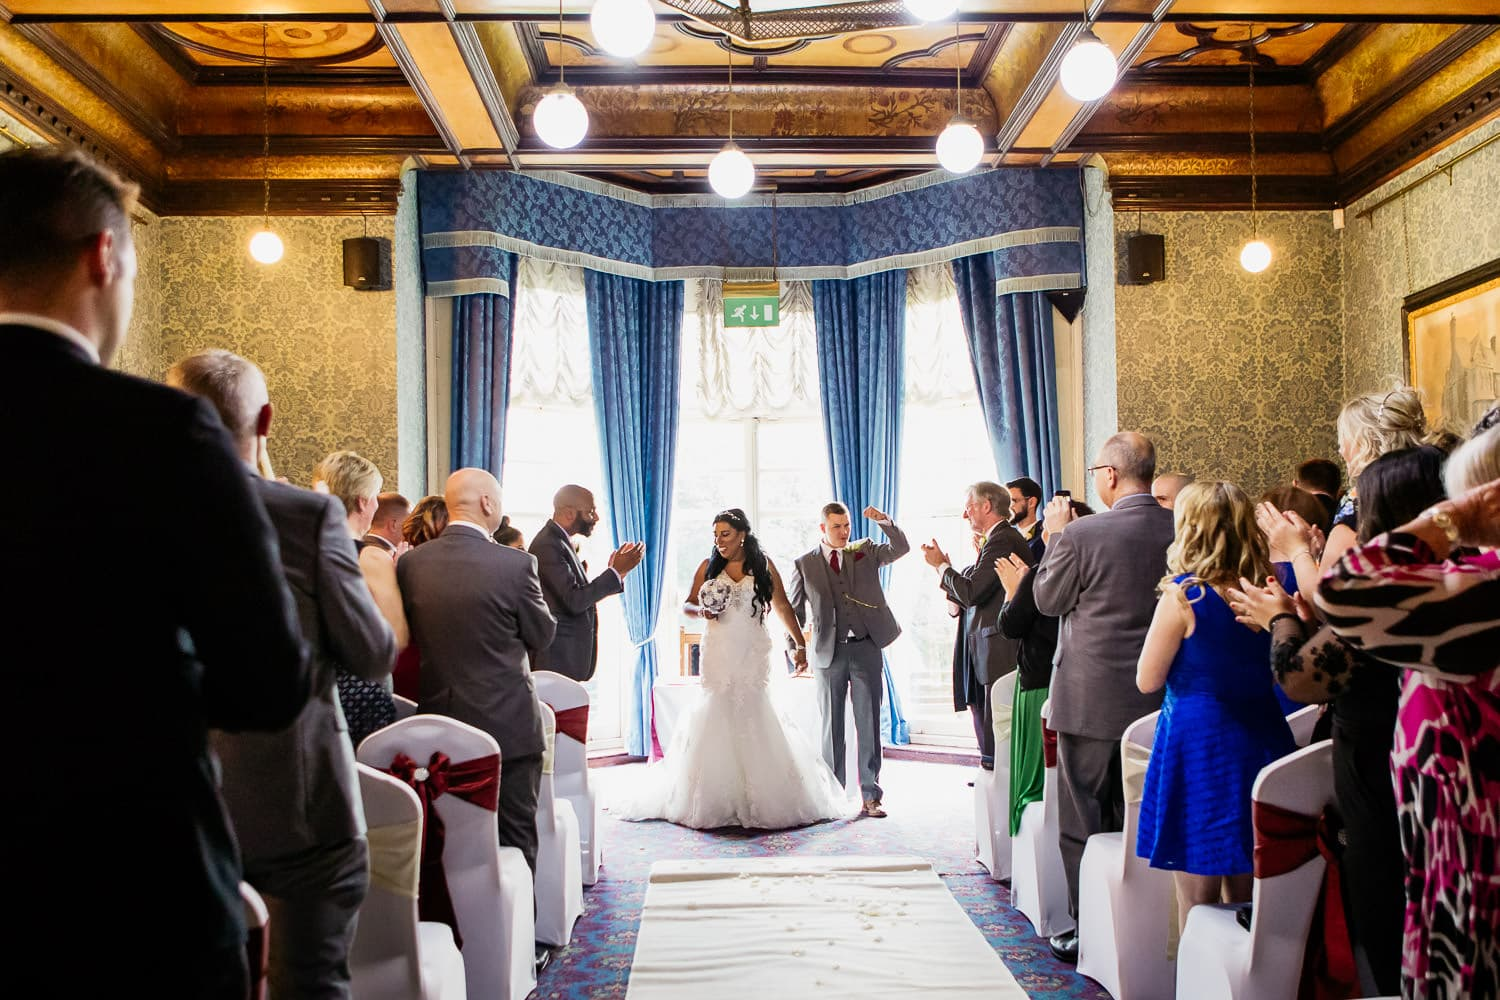 Highbury hall wedding photography captures groom punching the air in excitement after wedding ceremony